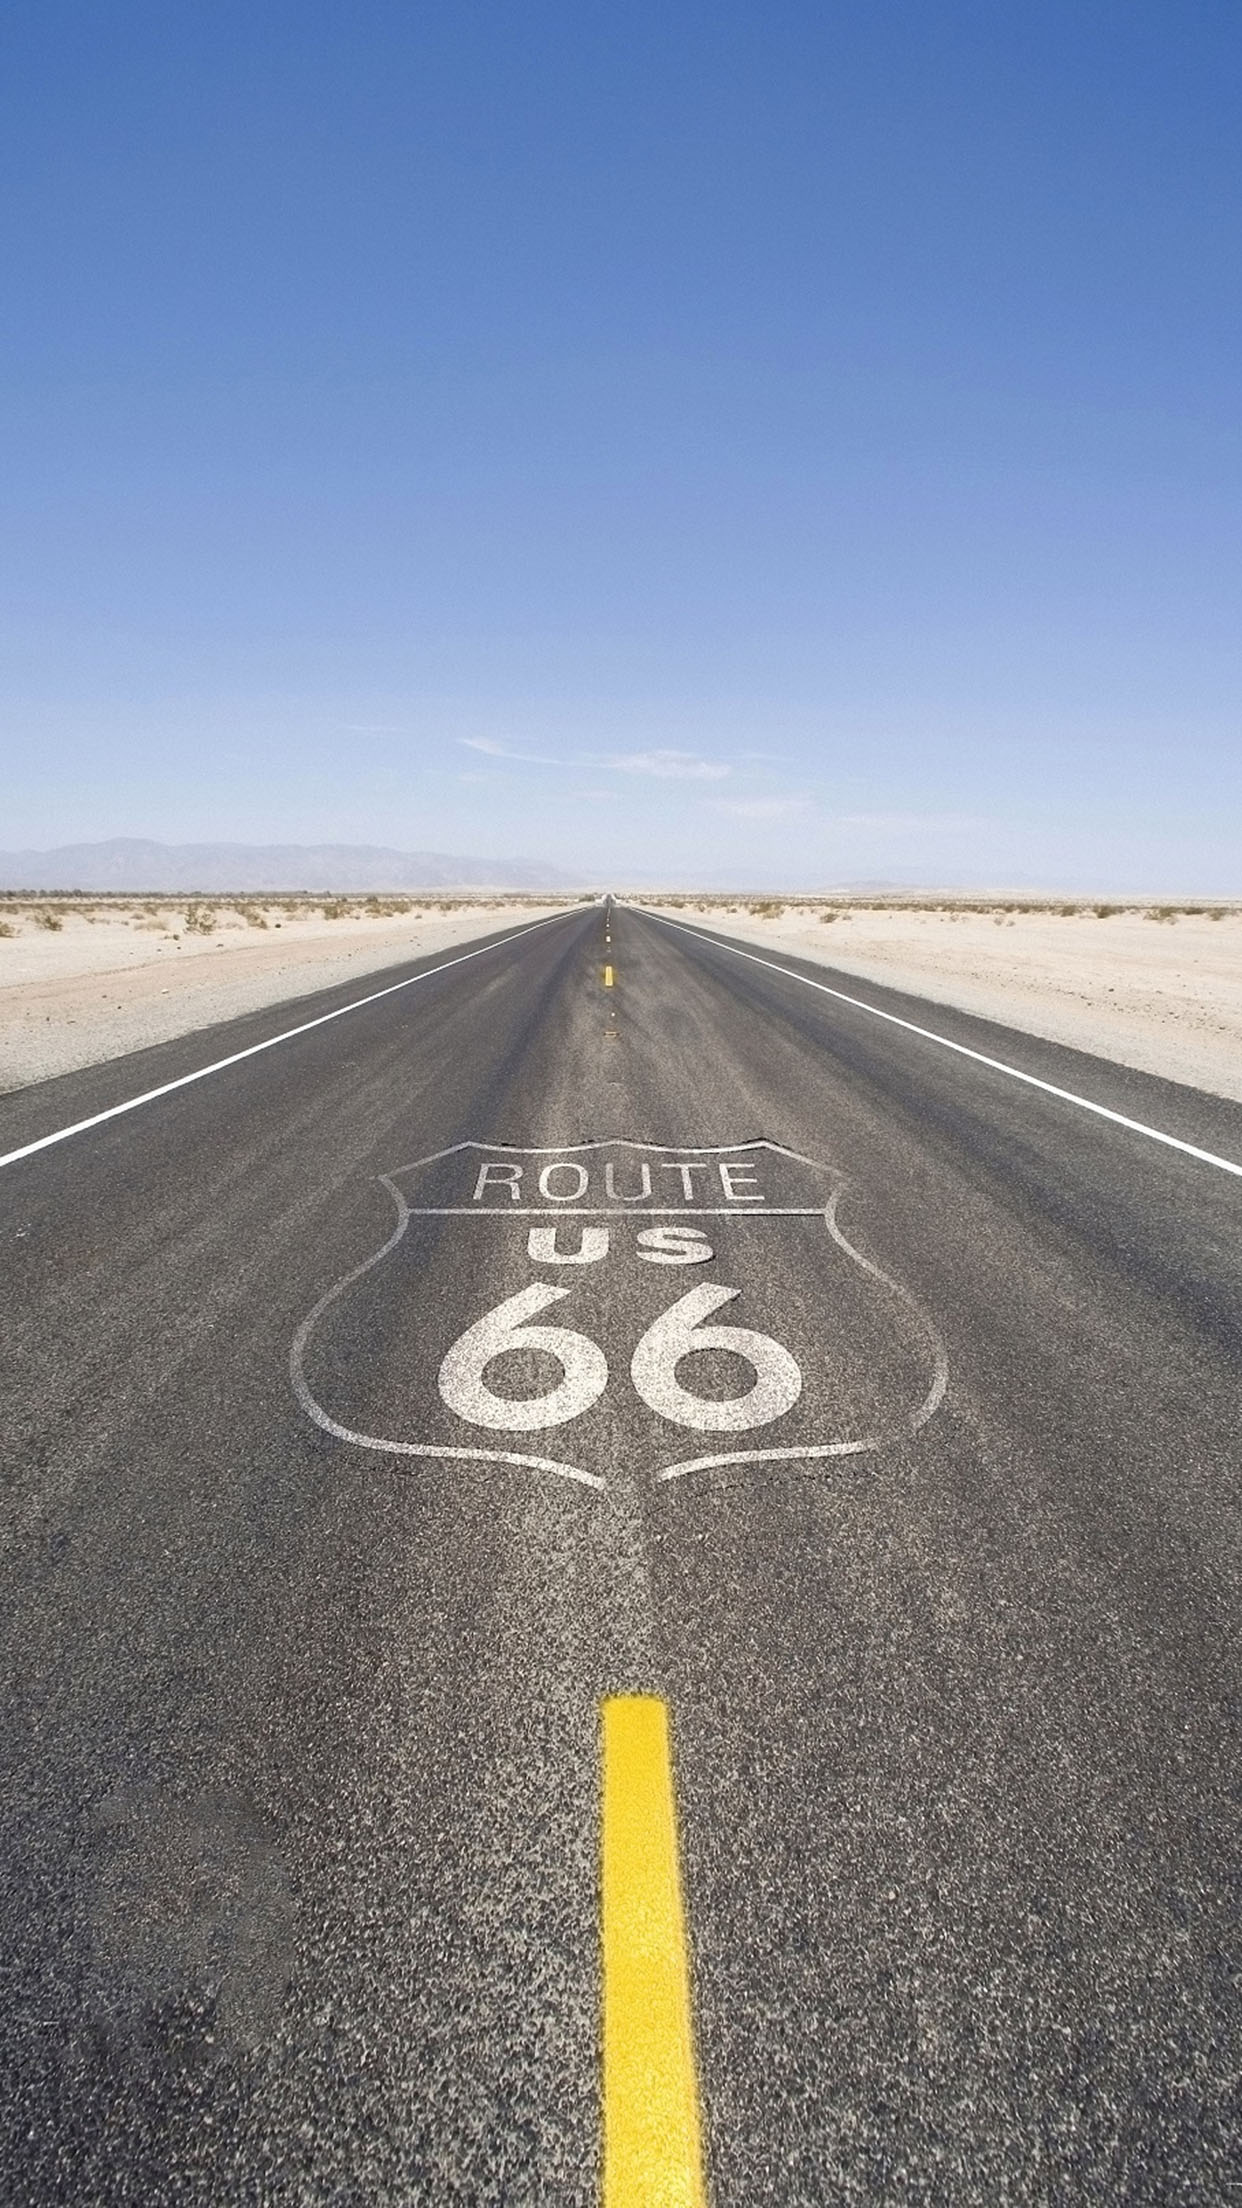 Route 66 Route 66 3 3Wallpapers iPhone Parallax Route 66 (3)